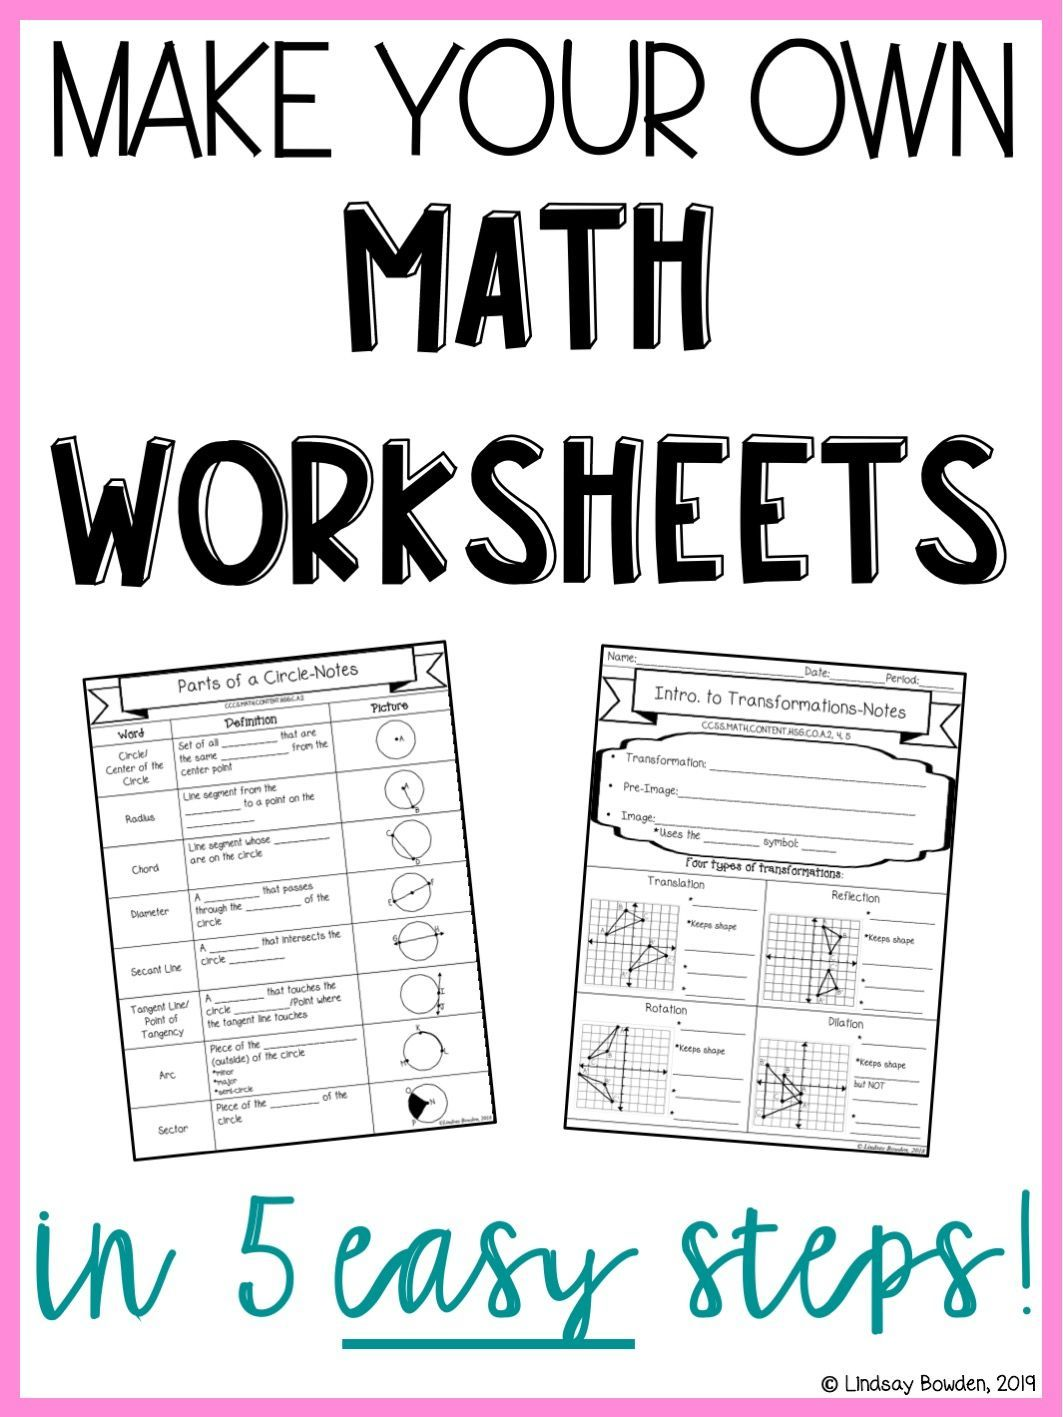 Learn How To Make Your Own Math Worksheets Notes On Best